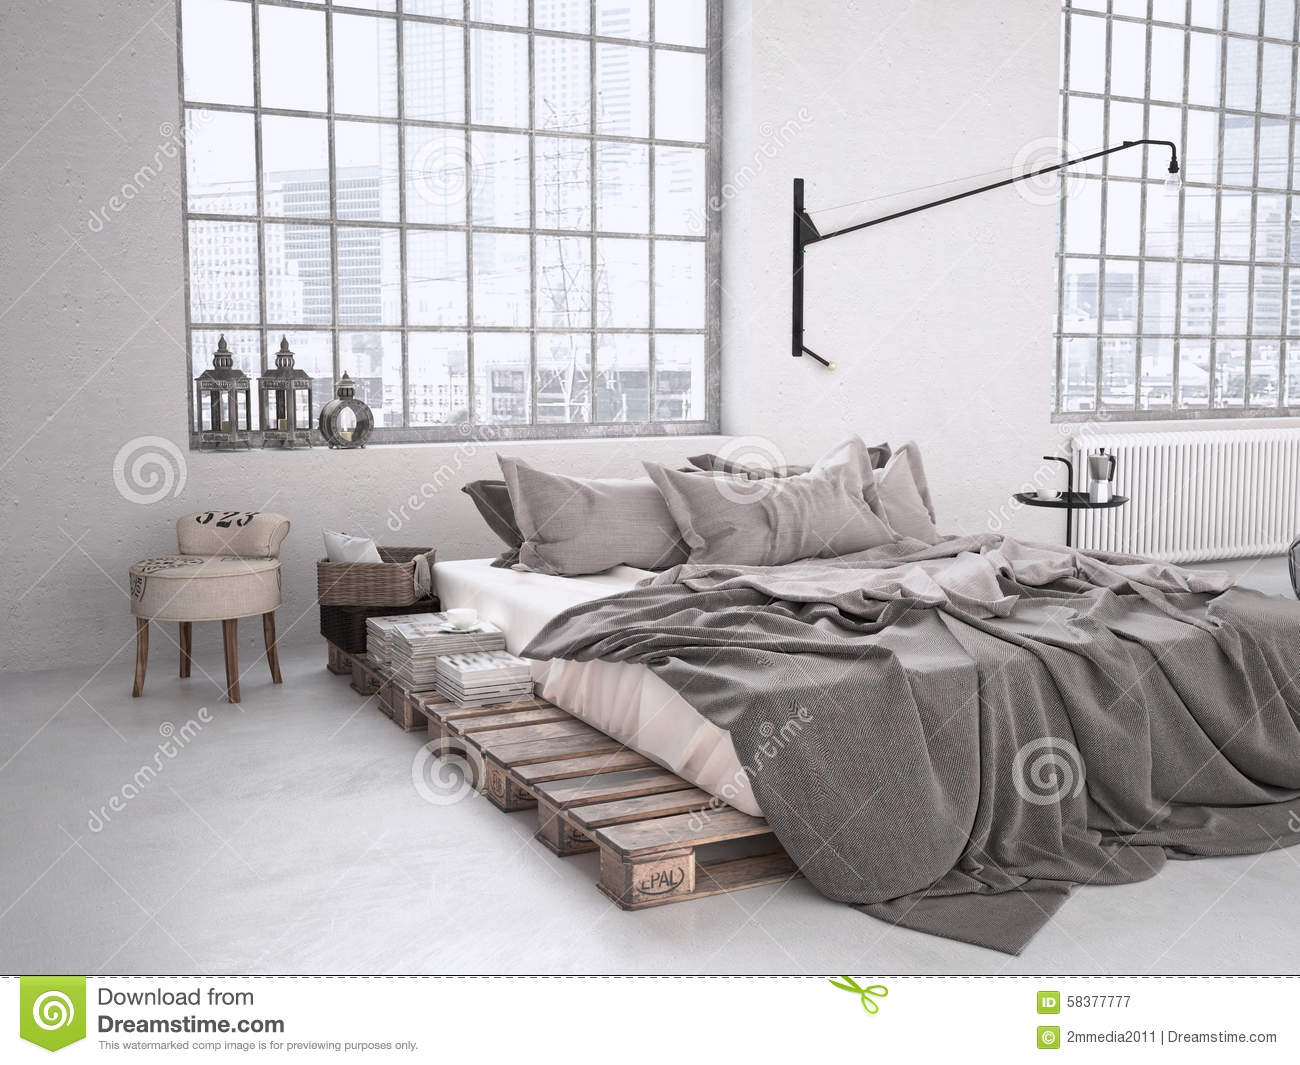 industrial bedroom. 3d rendering stock photo - image: 58377777